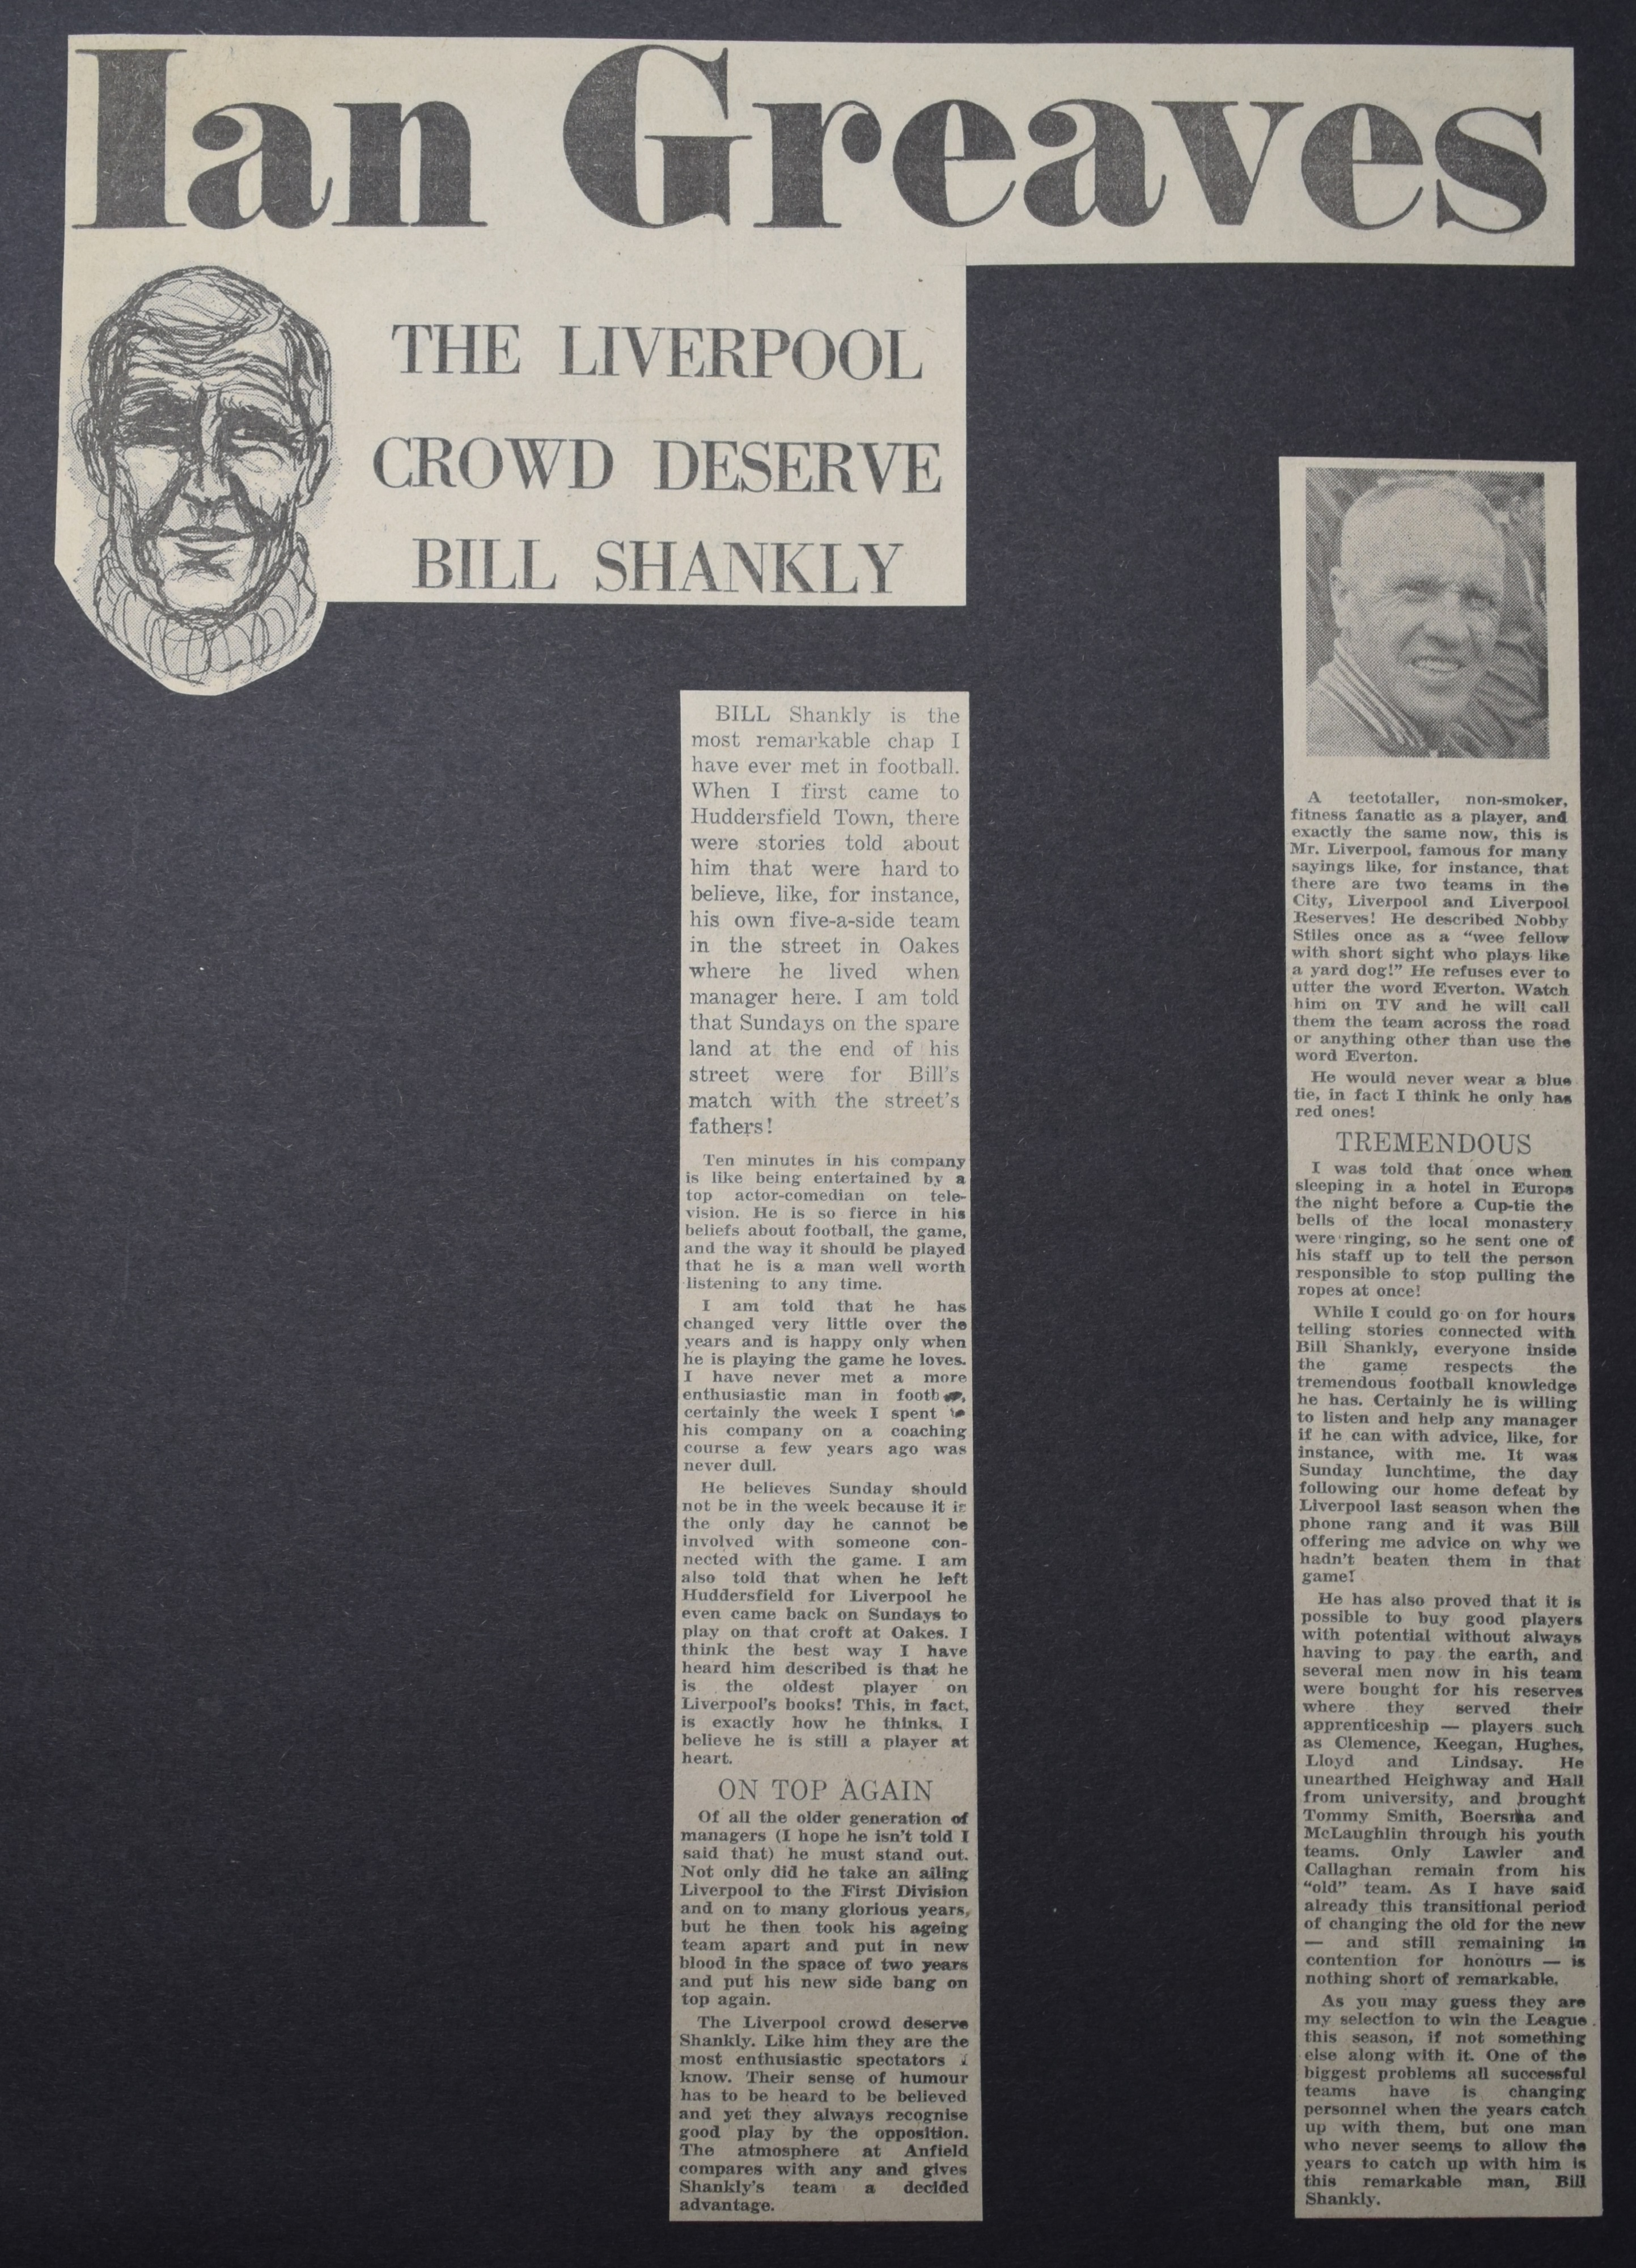 The Liverpool crowd deserves Bill Shankly - December 1972